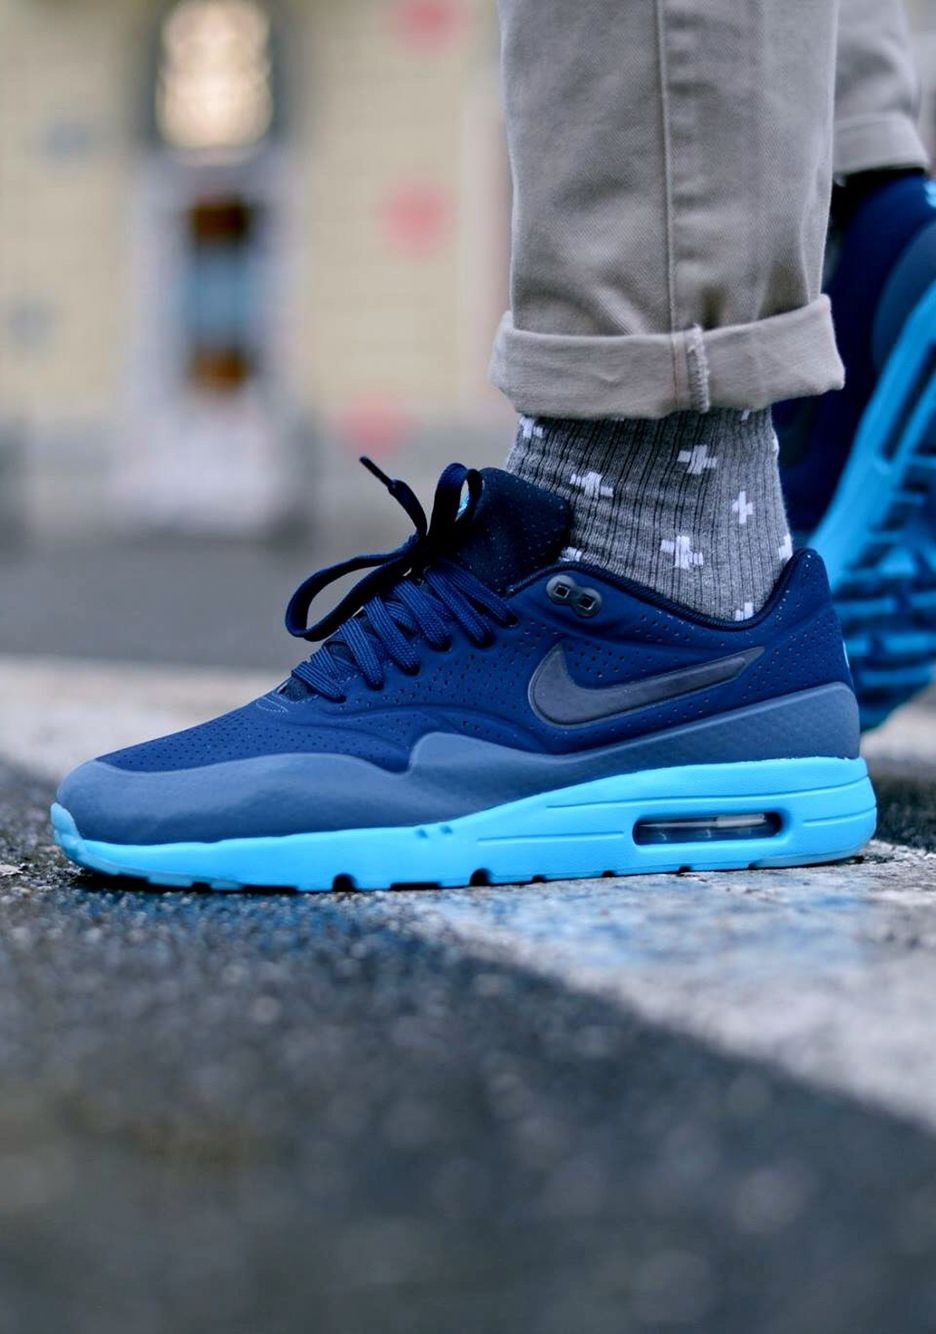 Nike Air Max 1 Ultra Moire: Blue